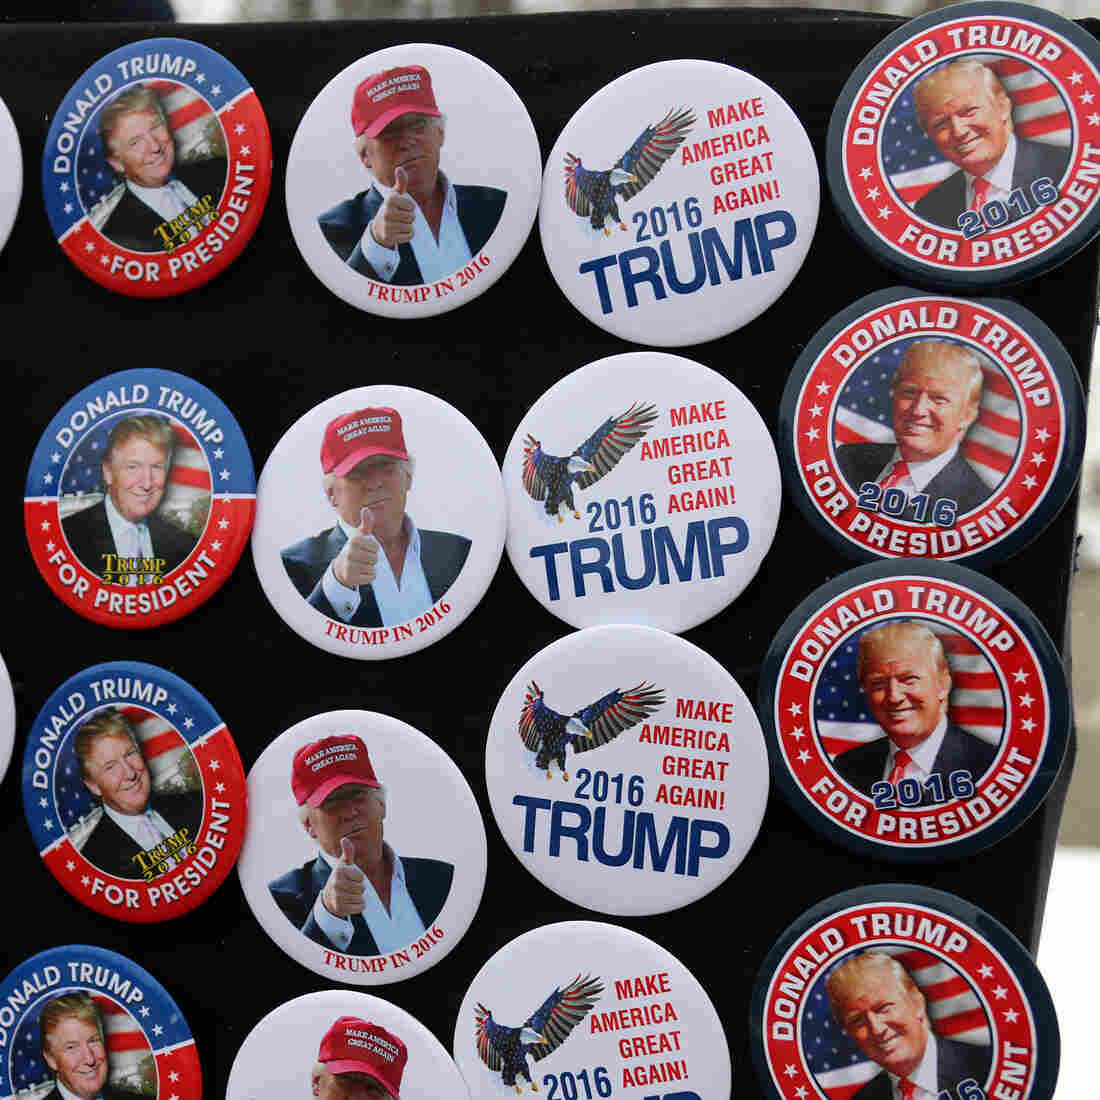 Donald Trump has broken all of the rules of campaigning in New Hampshire but still leads the polls there. A vendor sells Trump buttons at a rally in Concord this month.